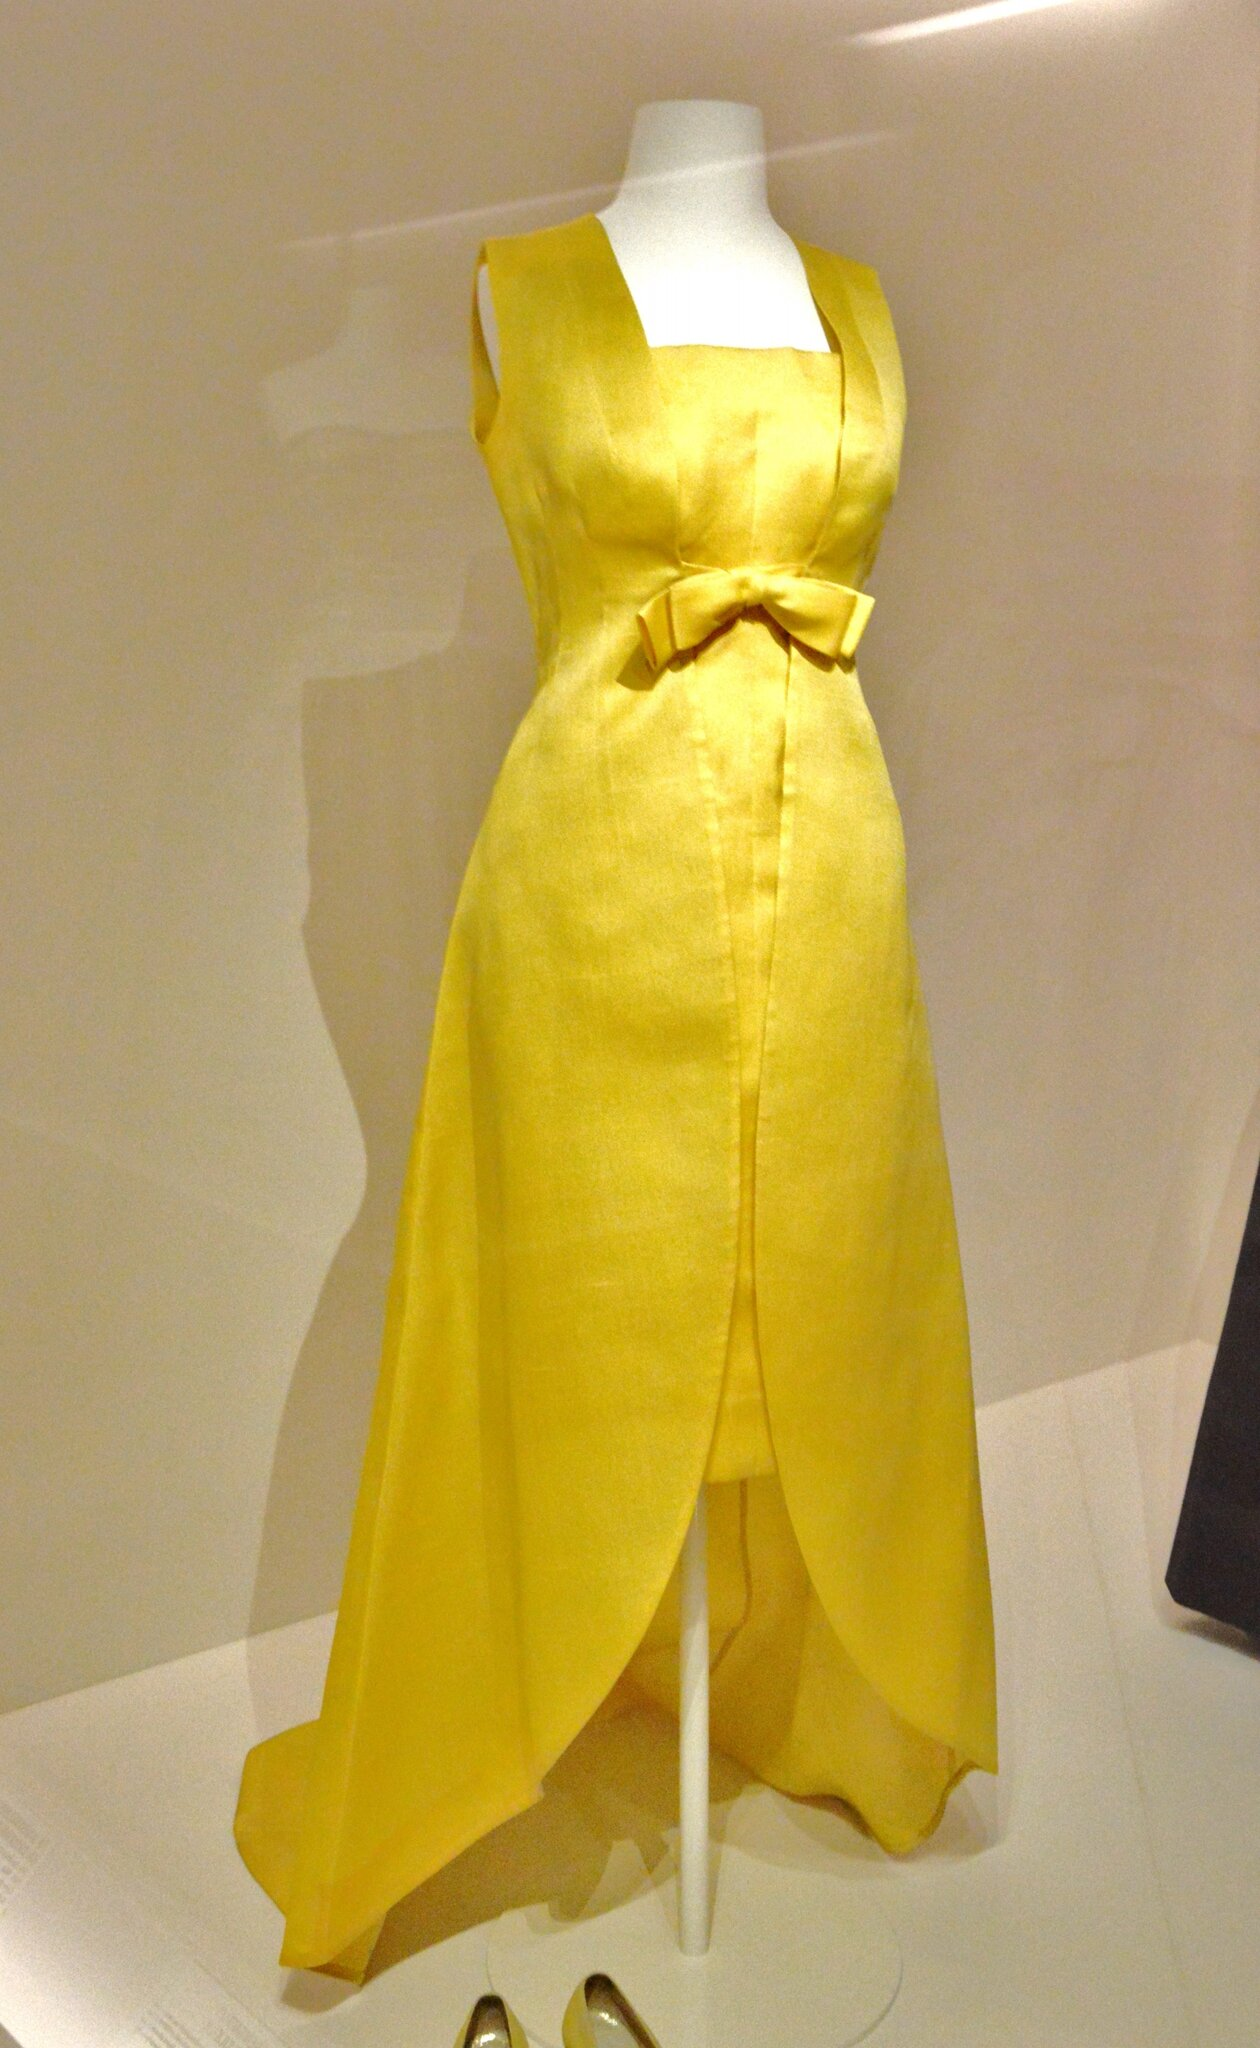 Yellow evening ensemble, Cristòbal Balenciaga, Paris, 1966-67